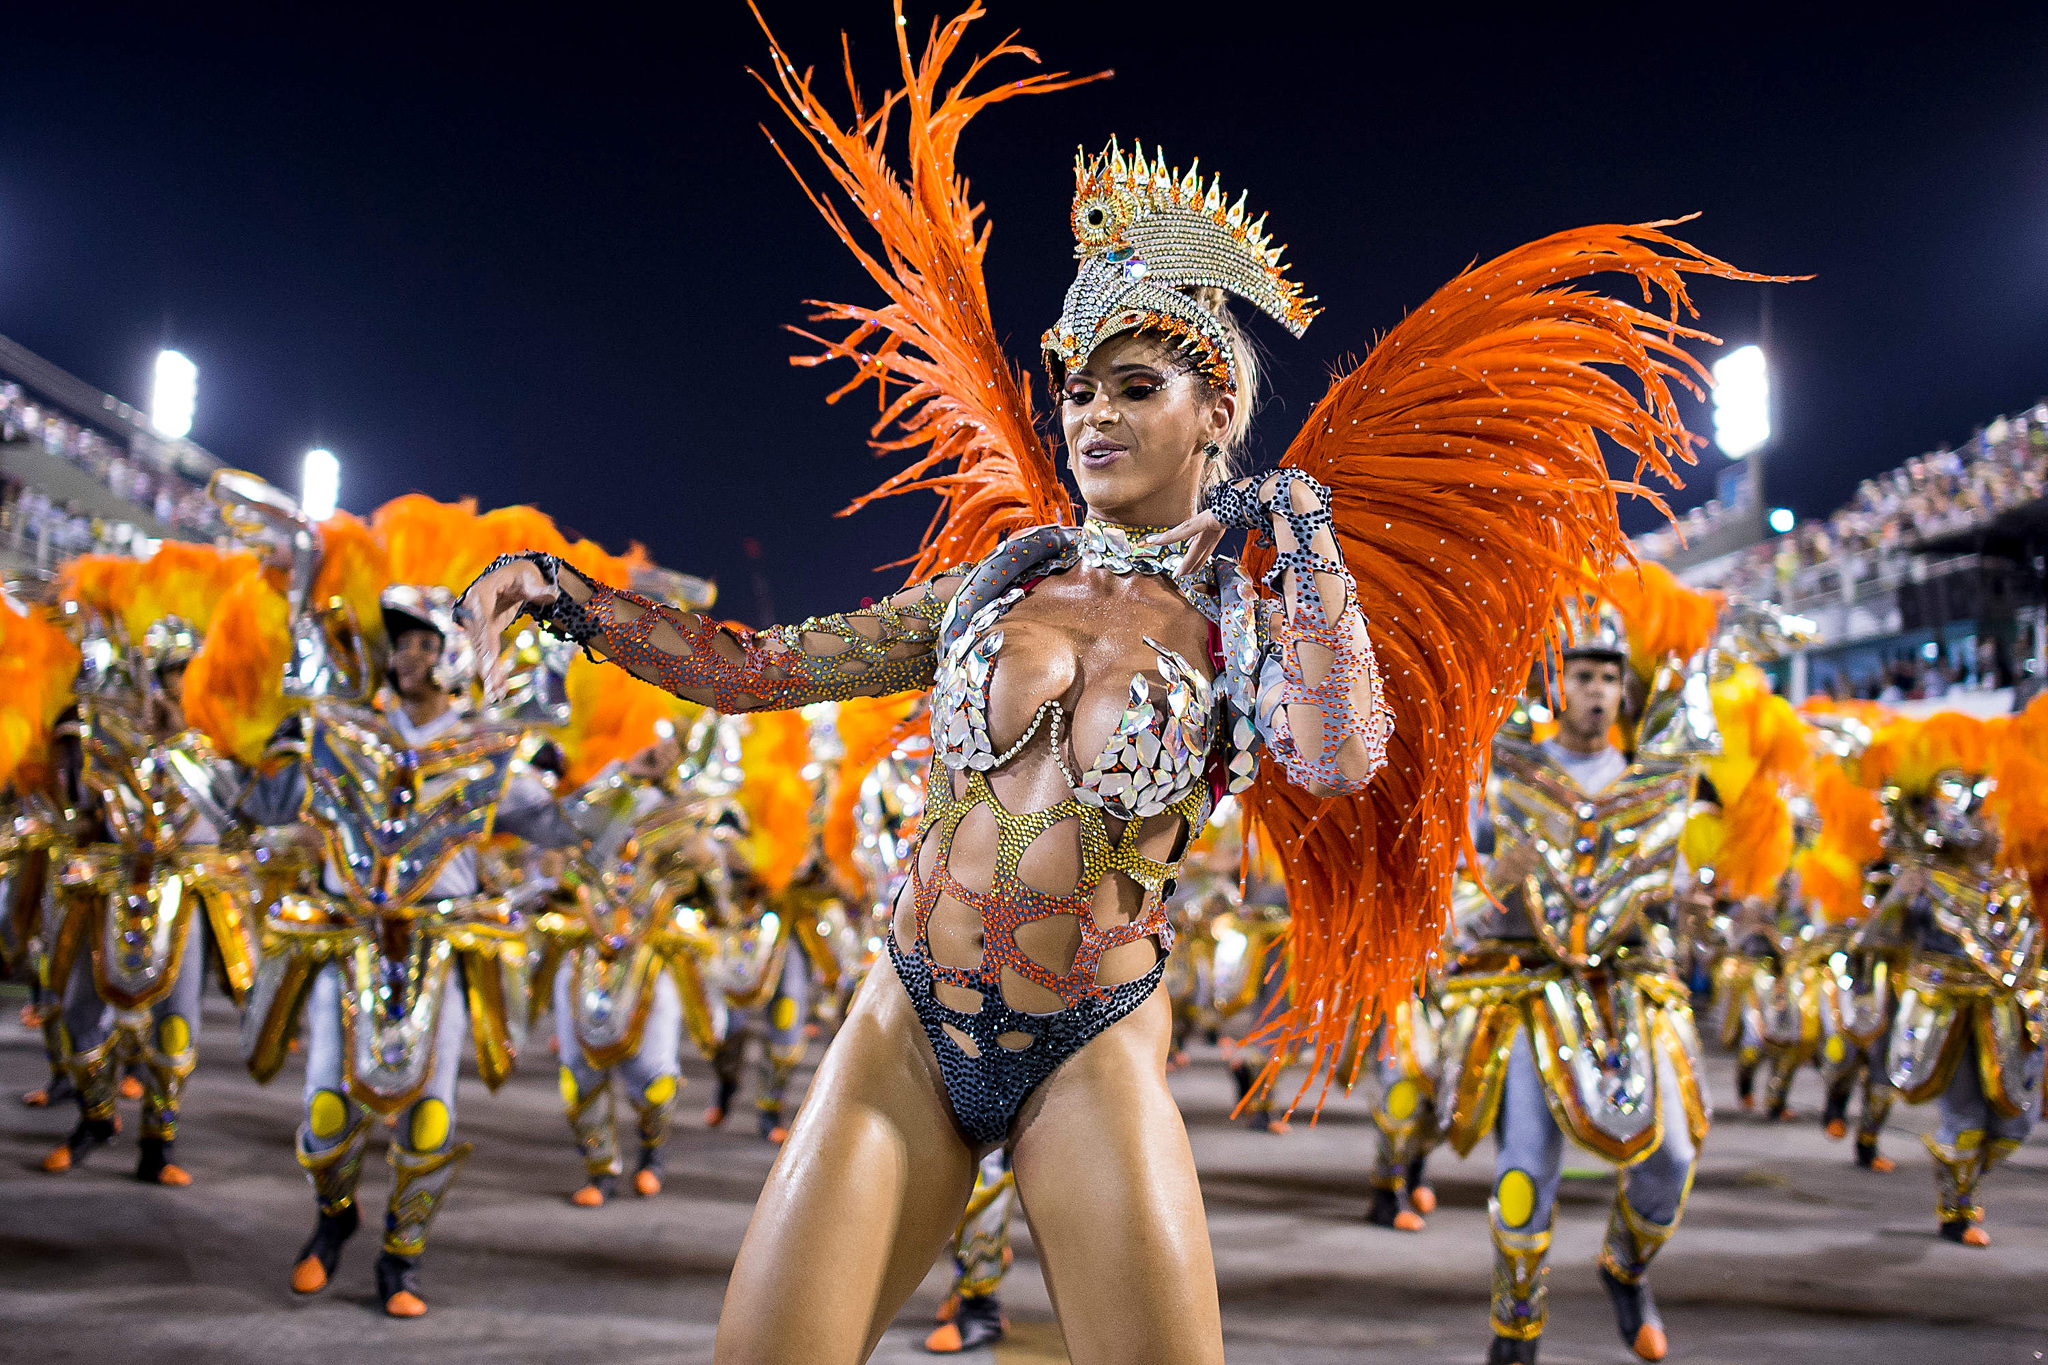 "Rio Carnival 2014 - Day 2...RIO DE JANEIRO, BRAZIL - MARCH 03: Members of Unidos da Tijuca Samba School during their parade at 2014 Brazilian Carnival at Sapucai Sambadrome on March 03, 2014 in Rio de Janeiro, Brazil. Rio's two nights of Carnival parades began on March 2 in a burst of fireworks and to the cheers of thousands of tourists and locals who have previously enjoyed street celebrations (known as ""blocos de rua"") all around the city. (Photo by Buda Mendes/Getty Images)"